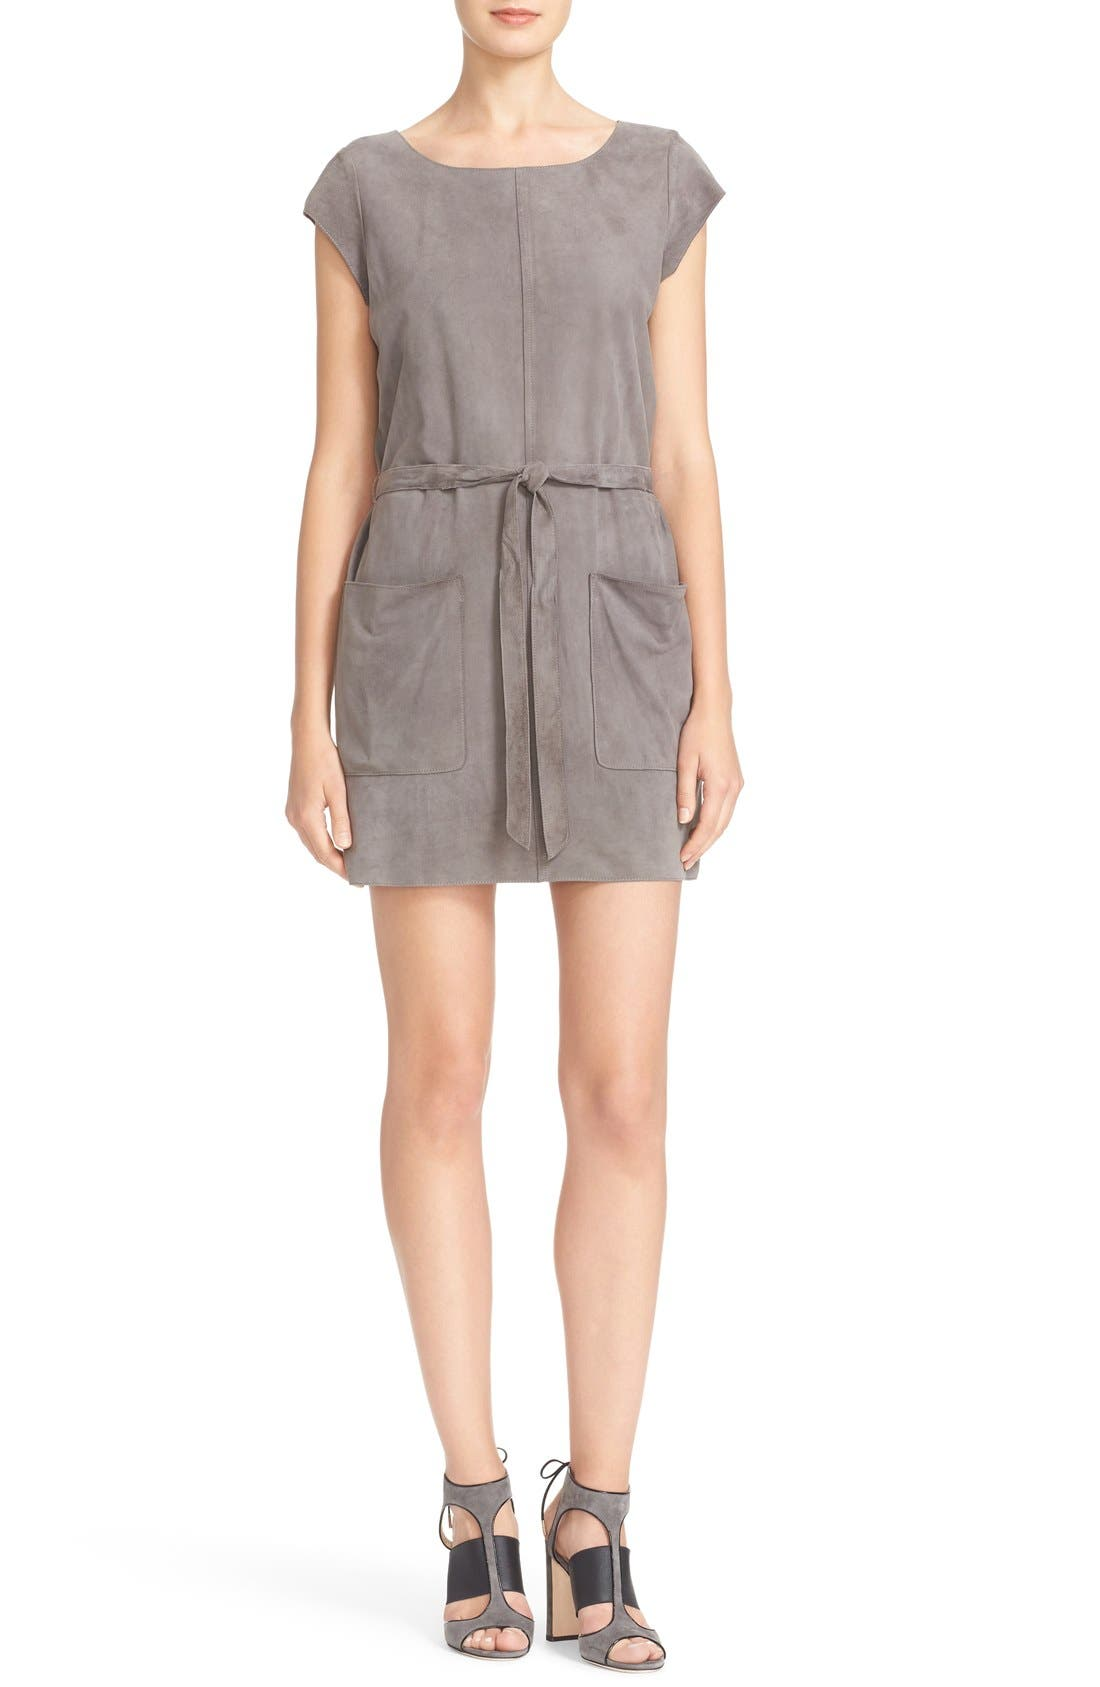 Alternate Image 1 Selected - Joie Maroone Belted Suede Minidress